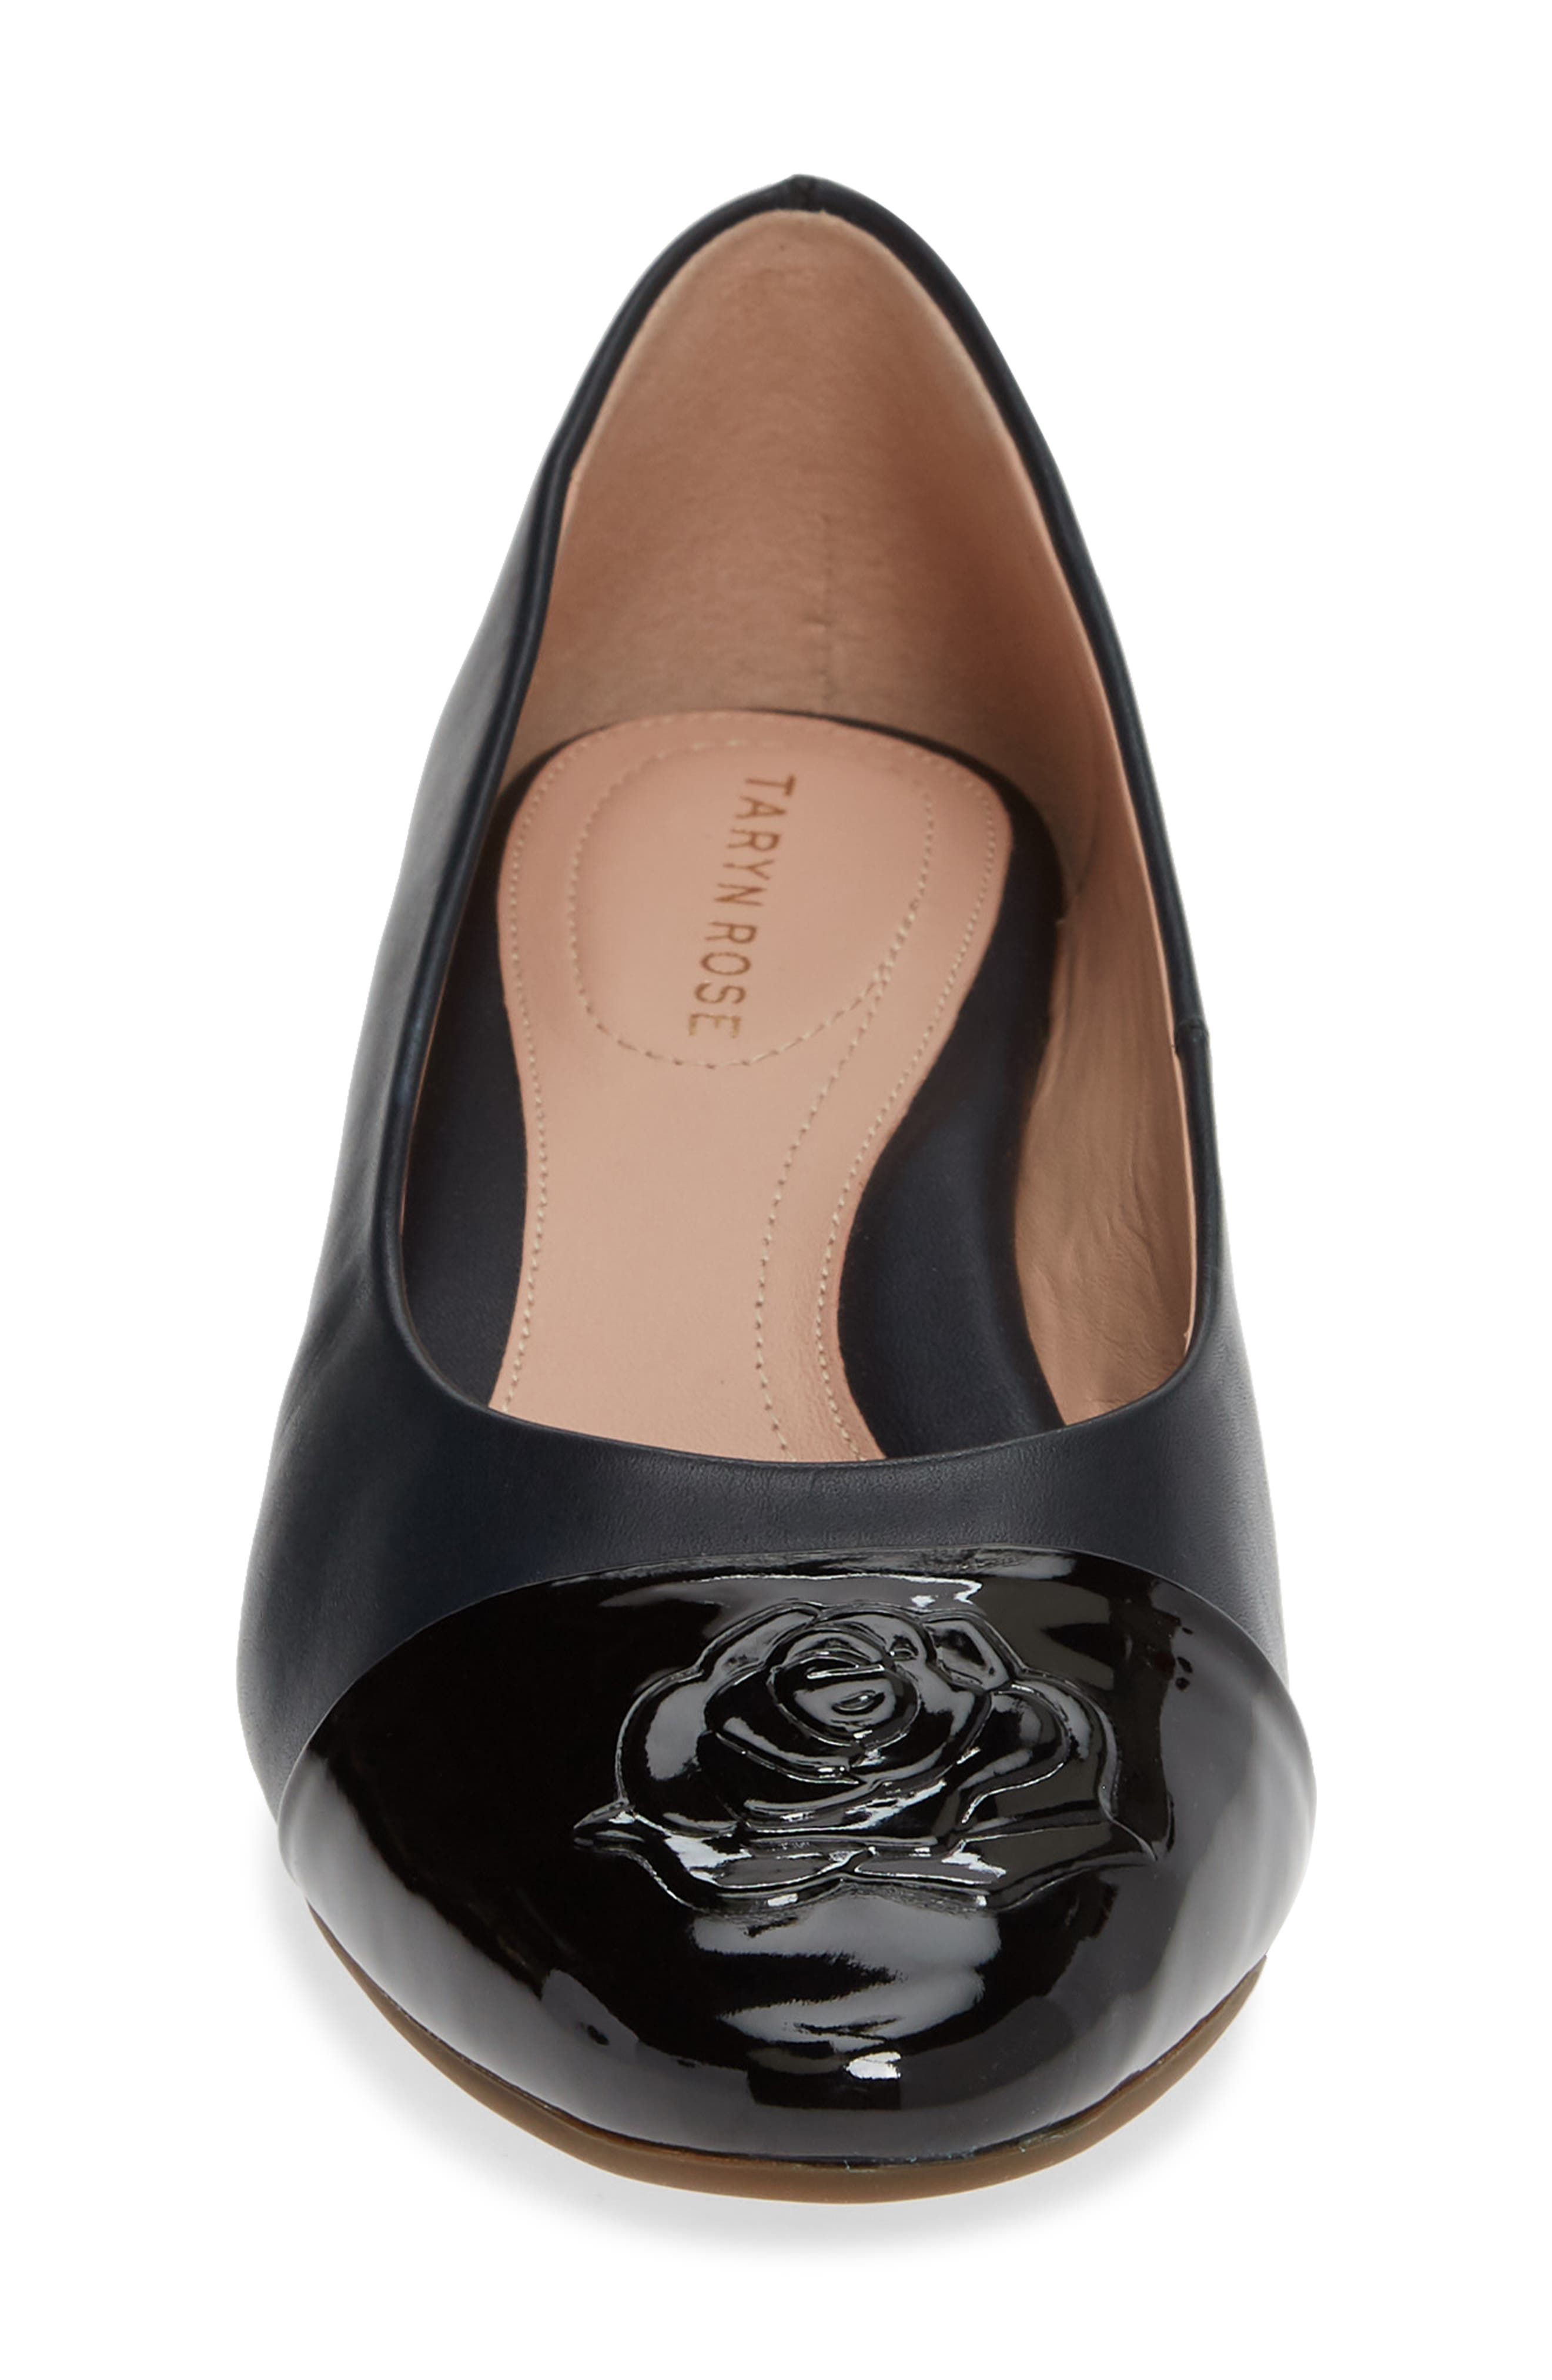 TARYN ROSE, Babe Cap Toe Pump, Alternate thumbnail 4, color, MIDNIGHT/ BLACK LEATHER